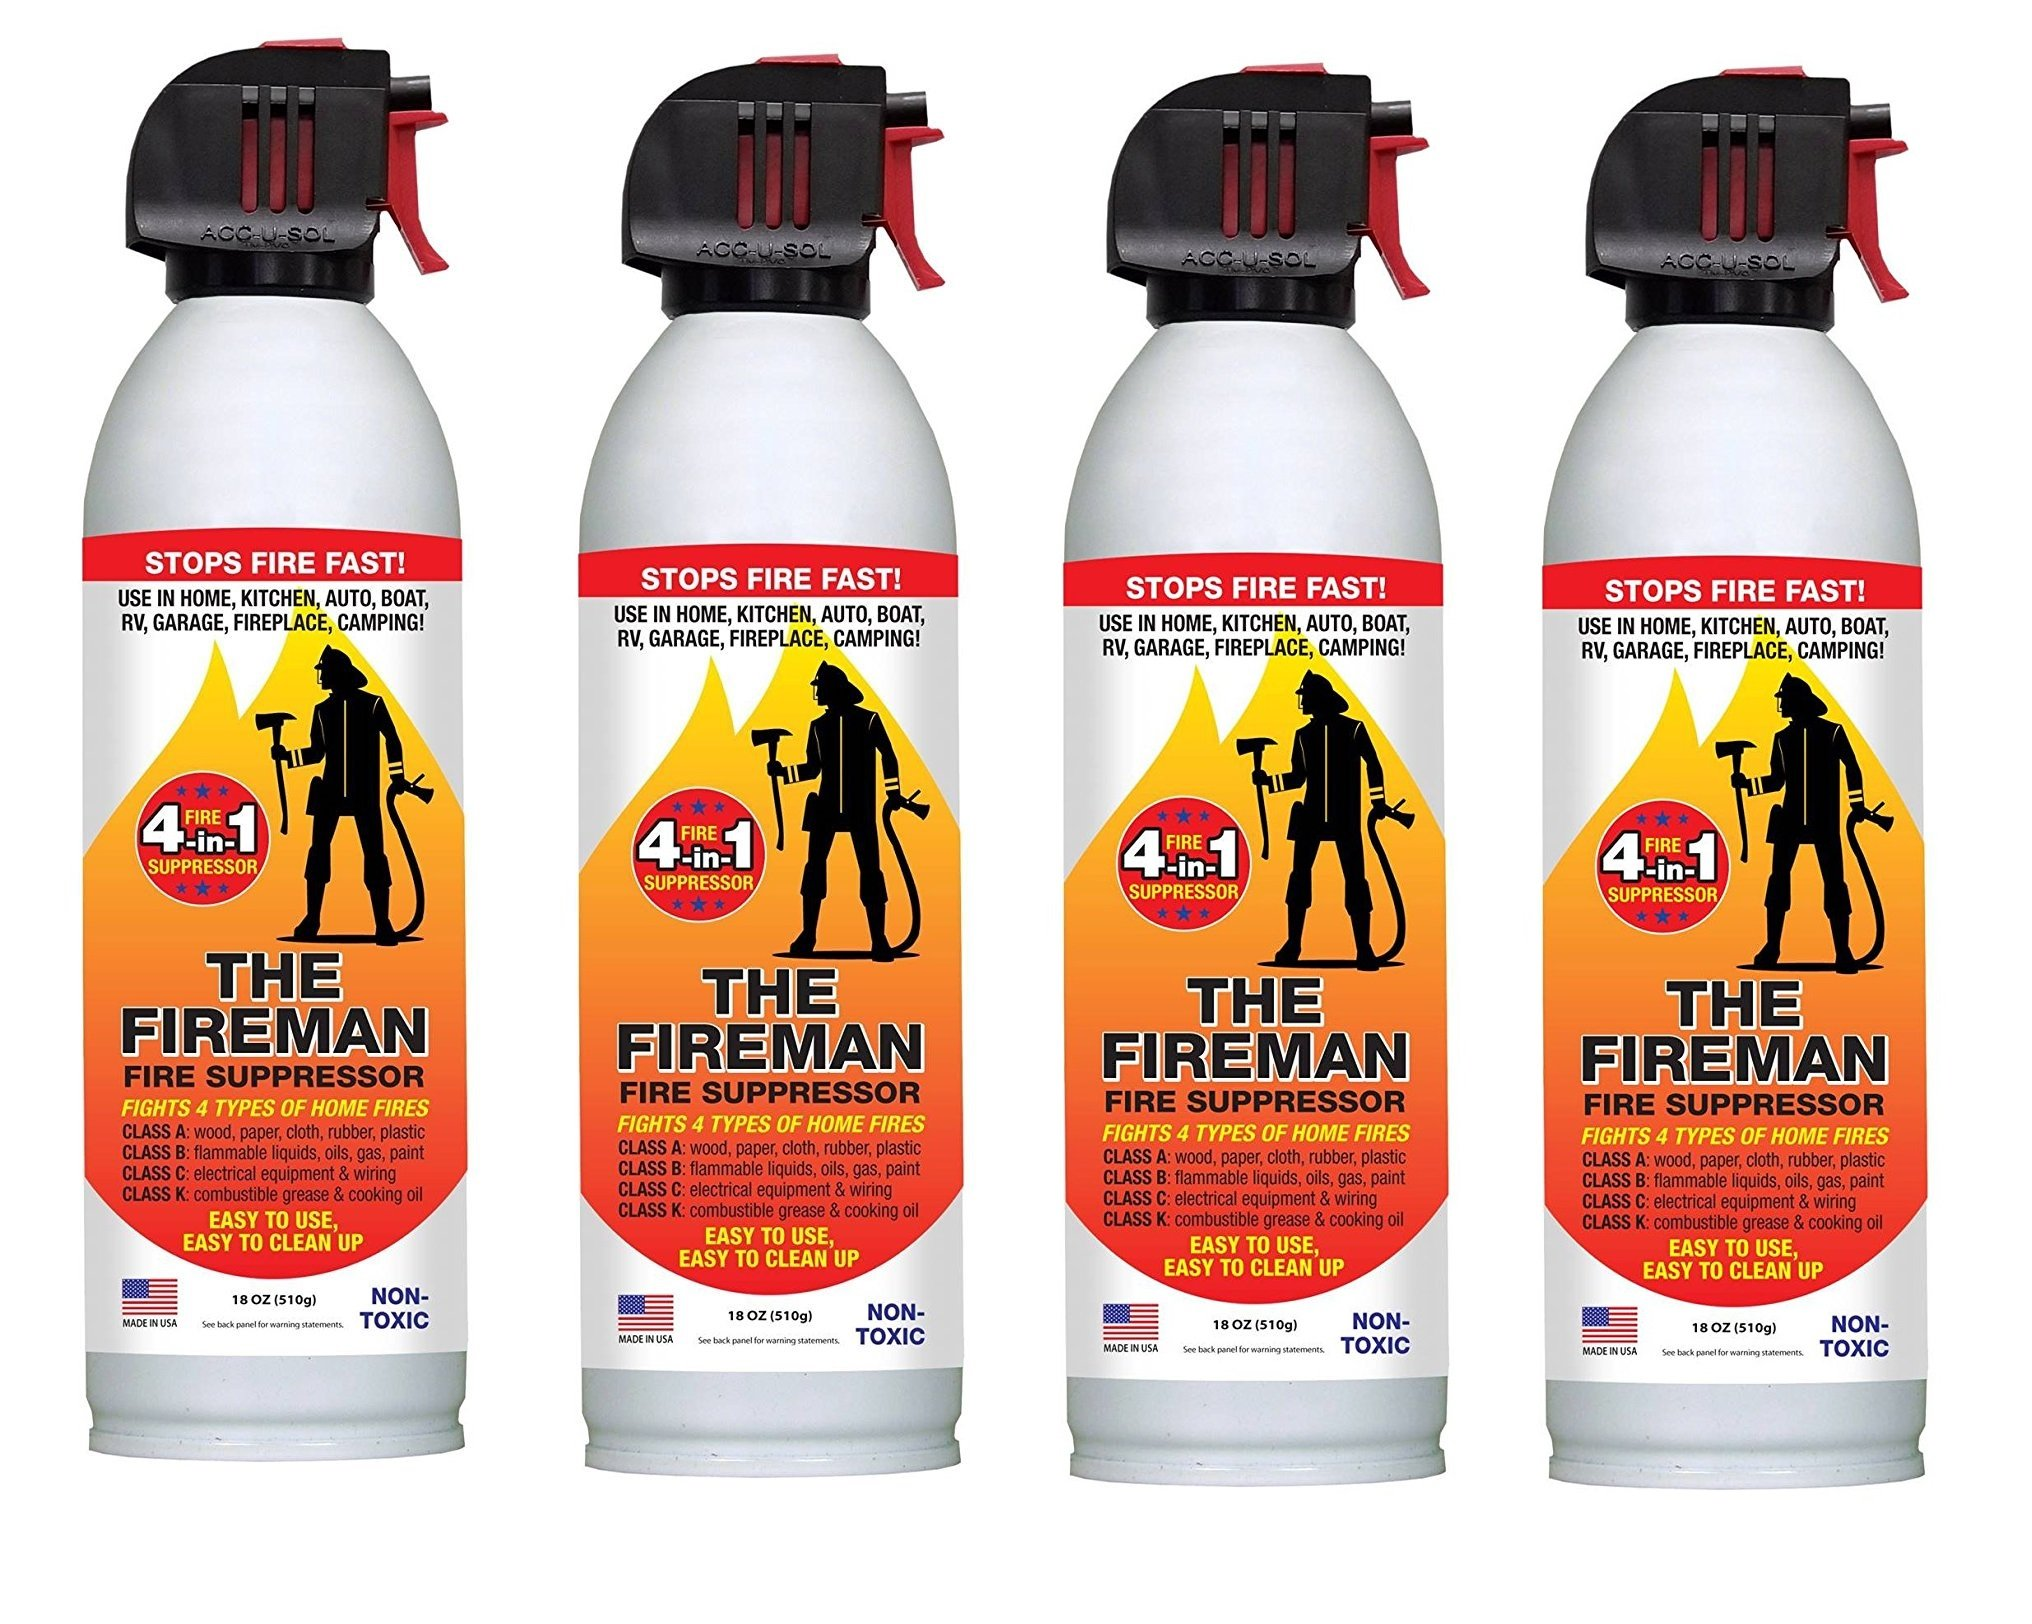 THE FIREMAN - Multi Purpose Fire Extinguishing Suppressant Spray - Fights ALL 4 Common Fires: Wood, Gasoline, Electrical Equipment and Grease/Fat Fires (Class A,B,C & K) - 18 oz. (4 Pack)